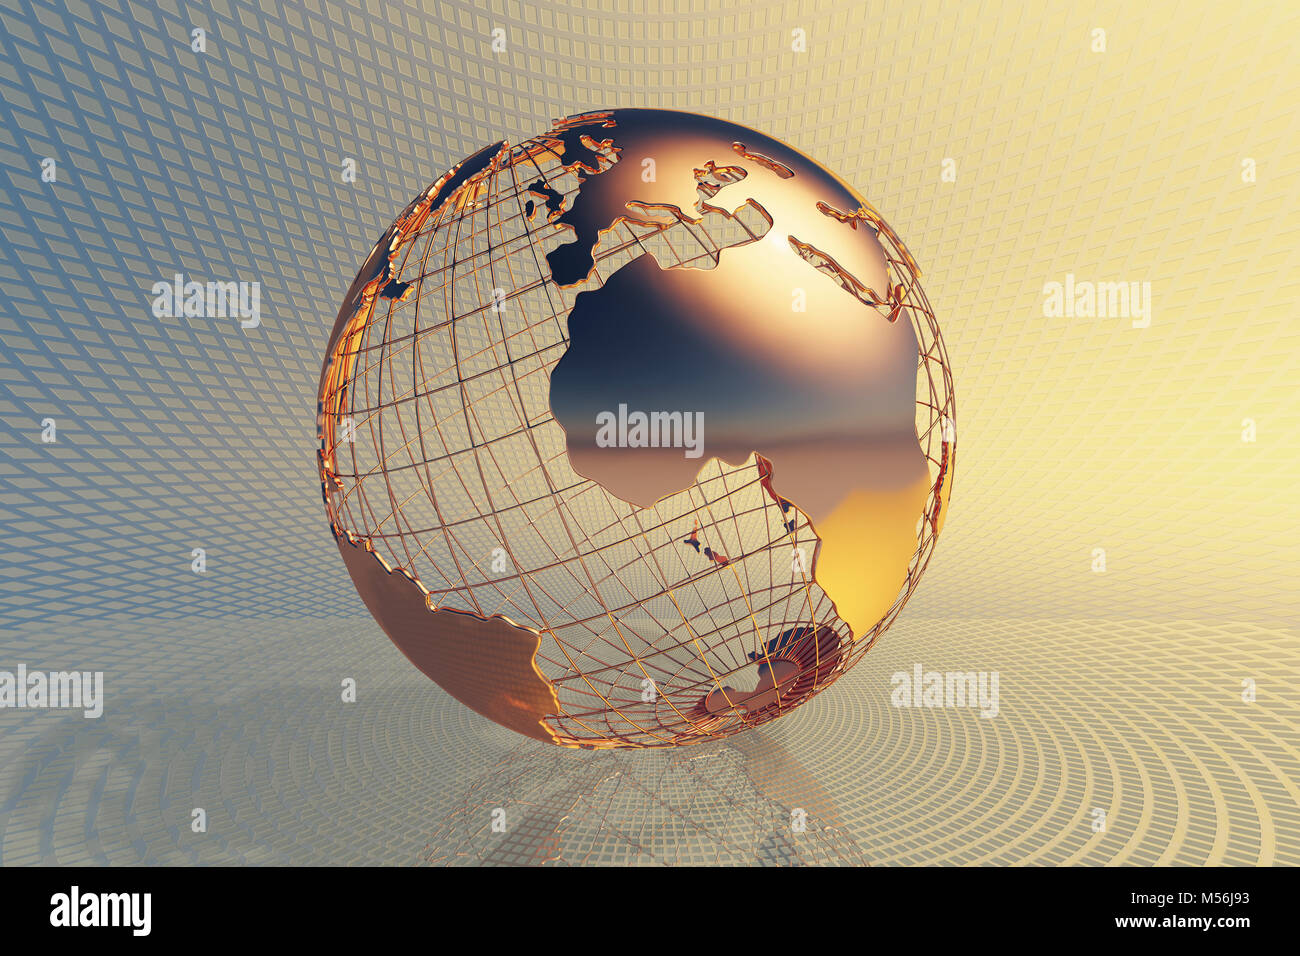 Welt global business Design mit abstrakter Hi-tech-goldenen Metall Hintergrund (3D Render) Stockbild